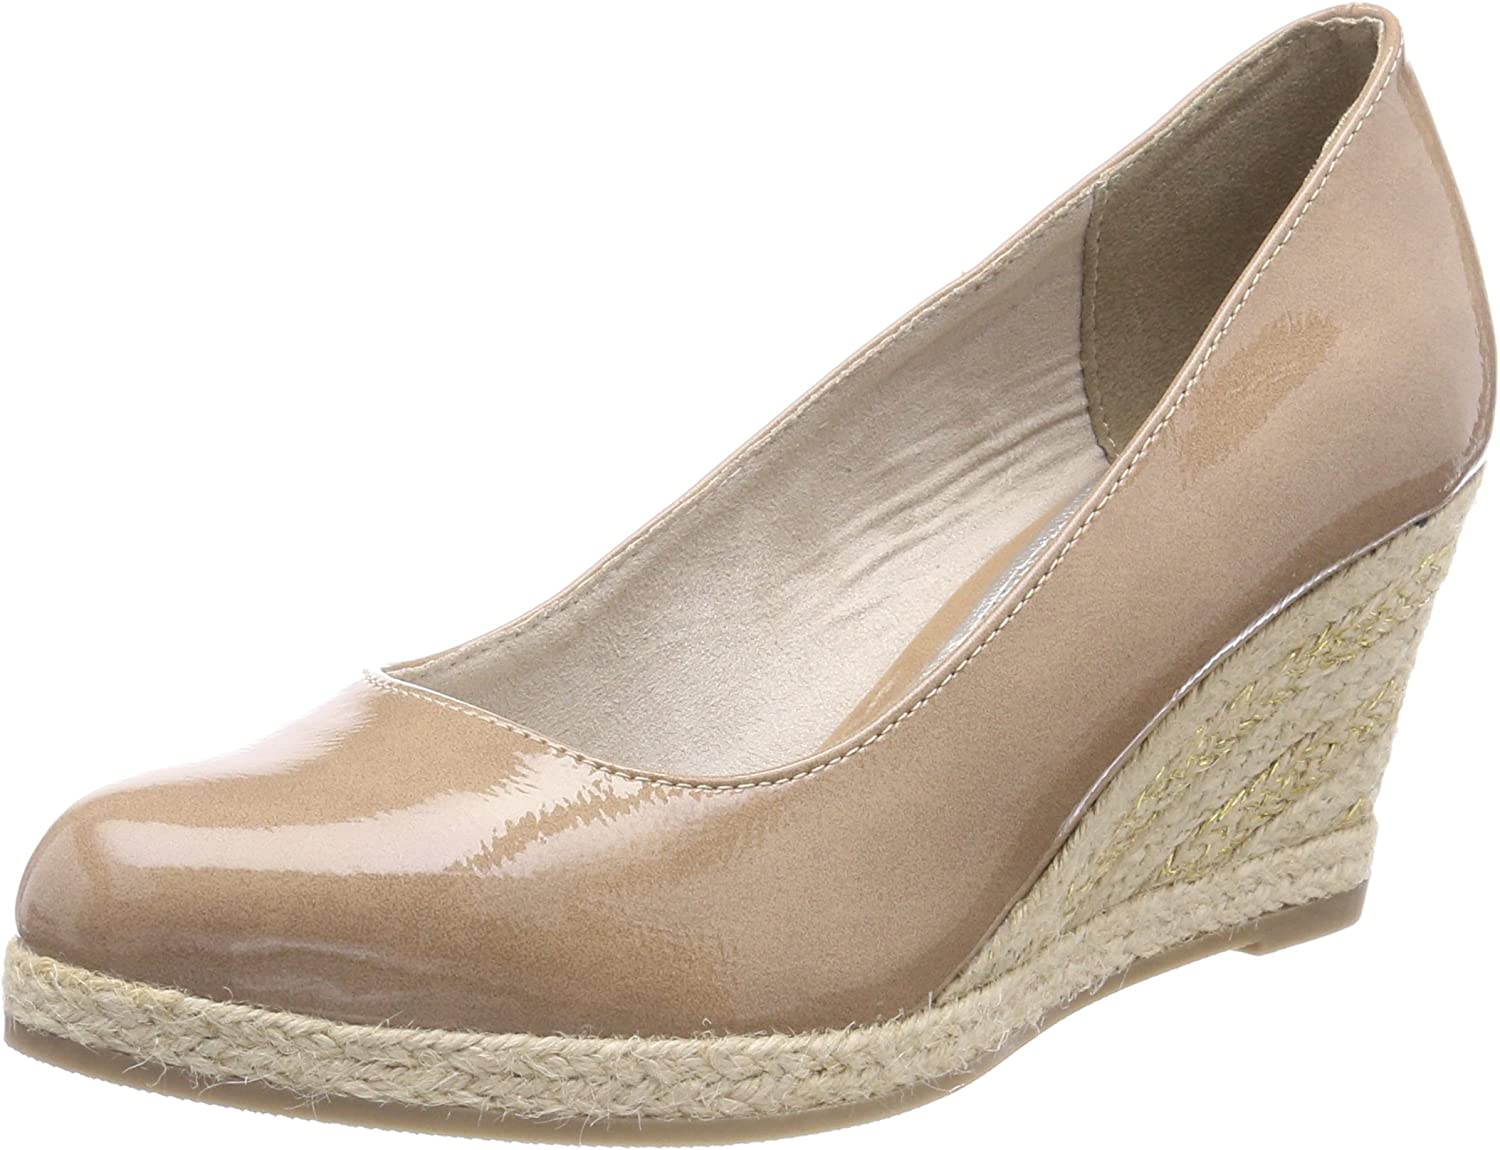 Marco Tozzi Women's Candy Nude Patent Wedge Court shoes